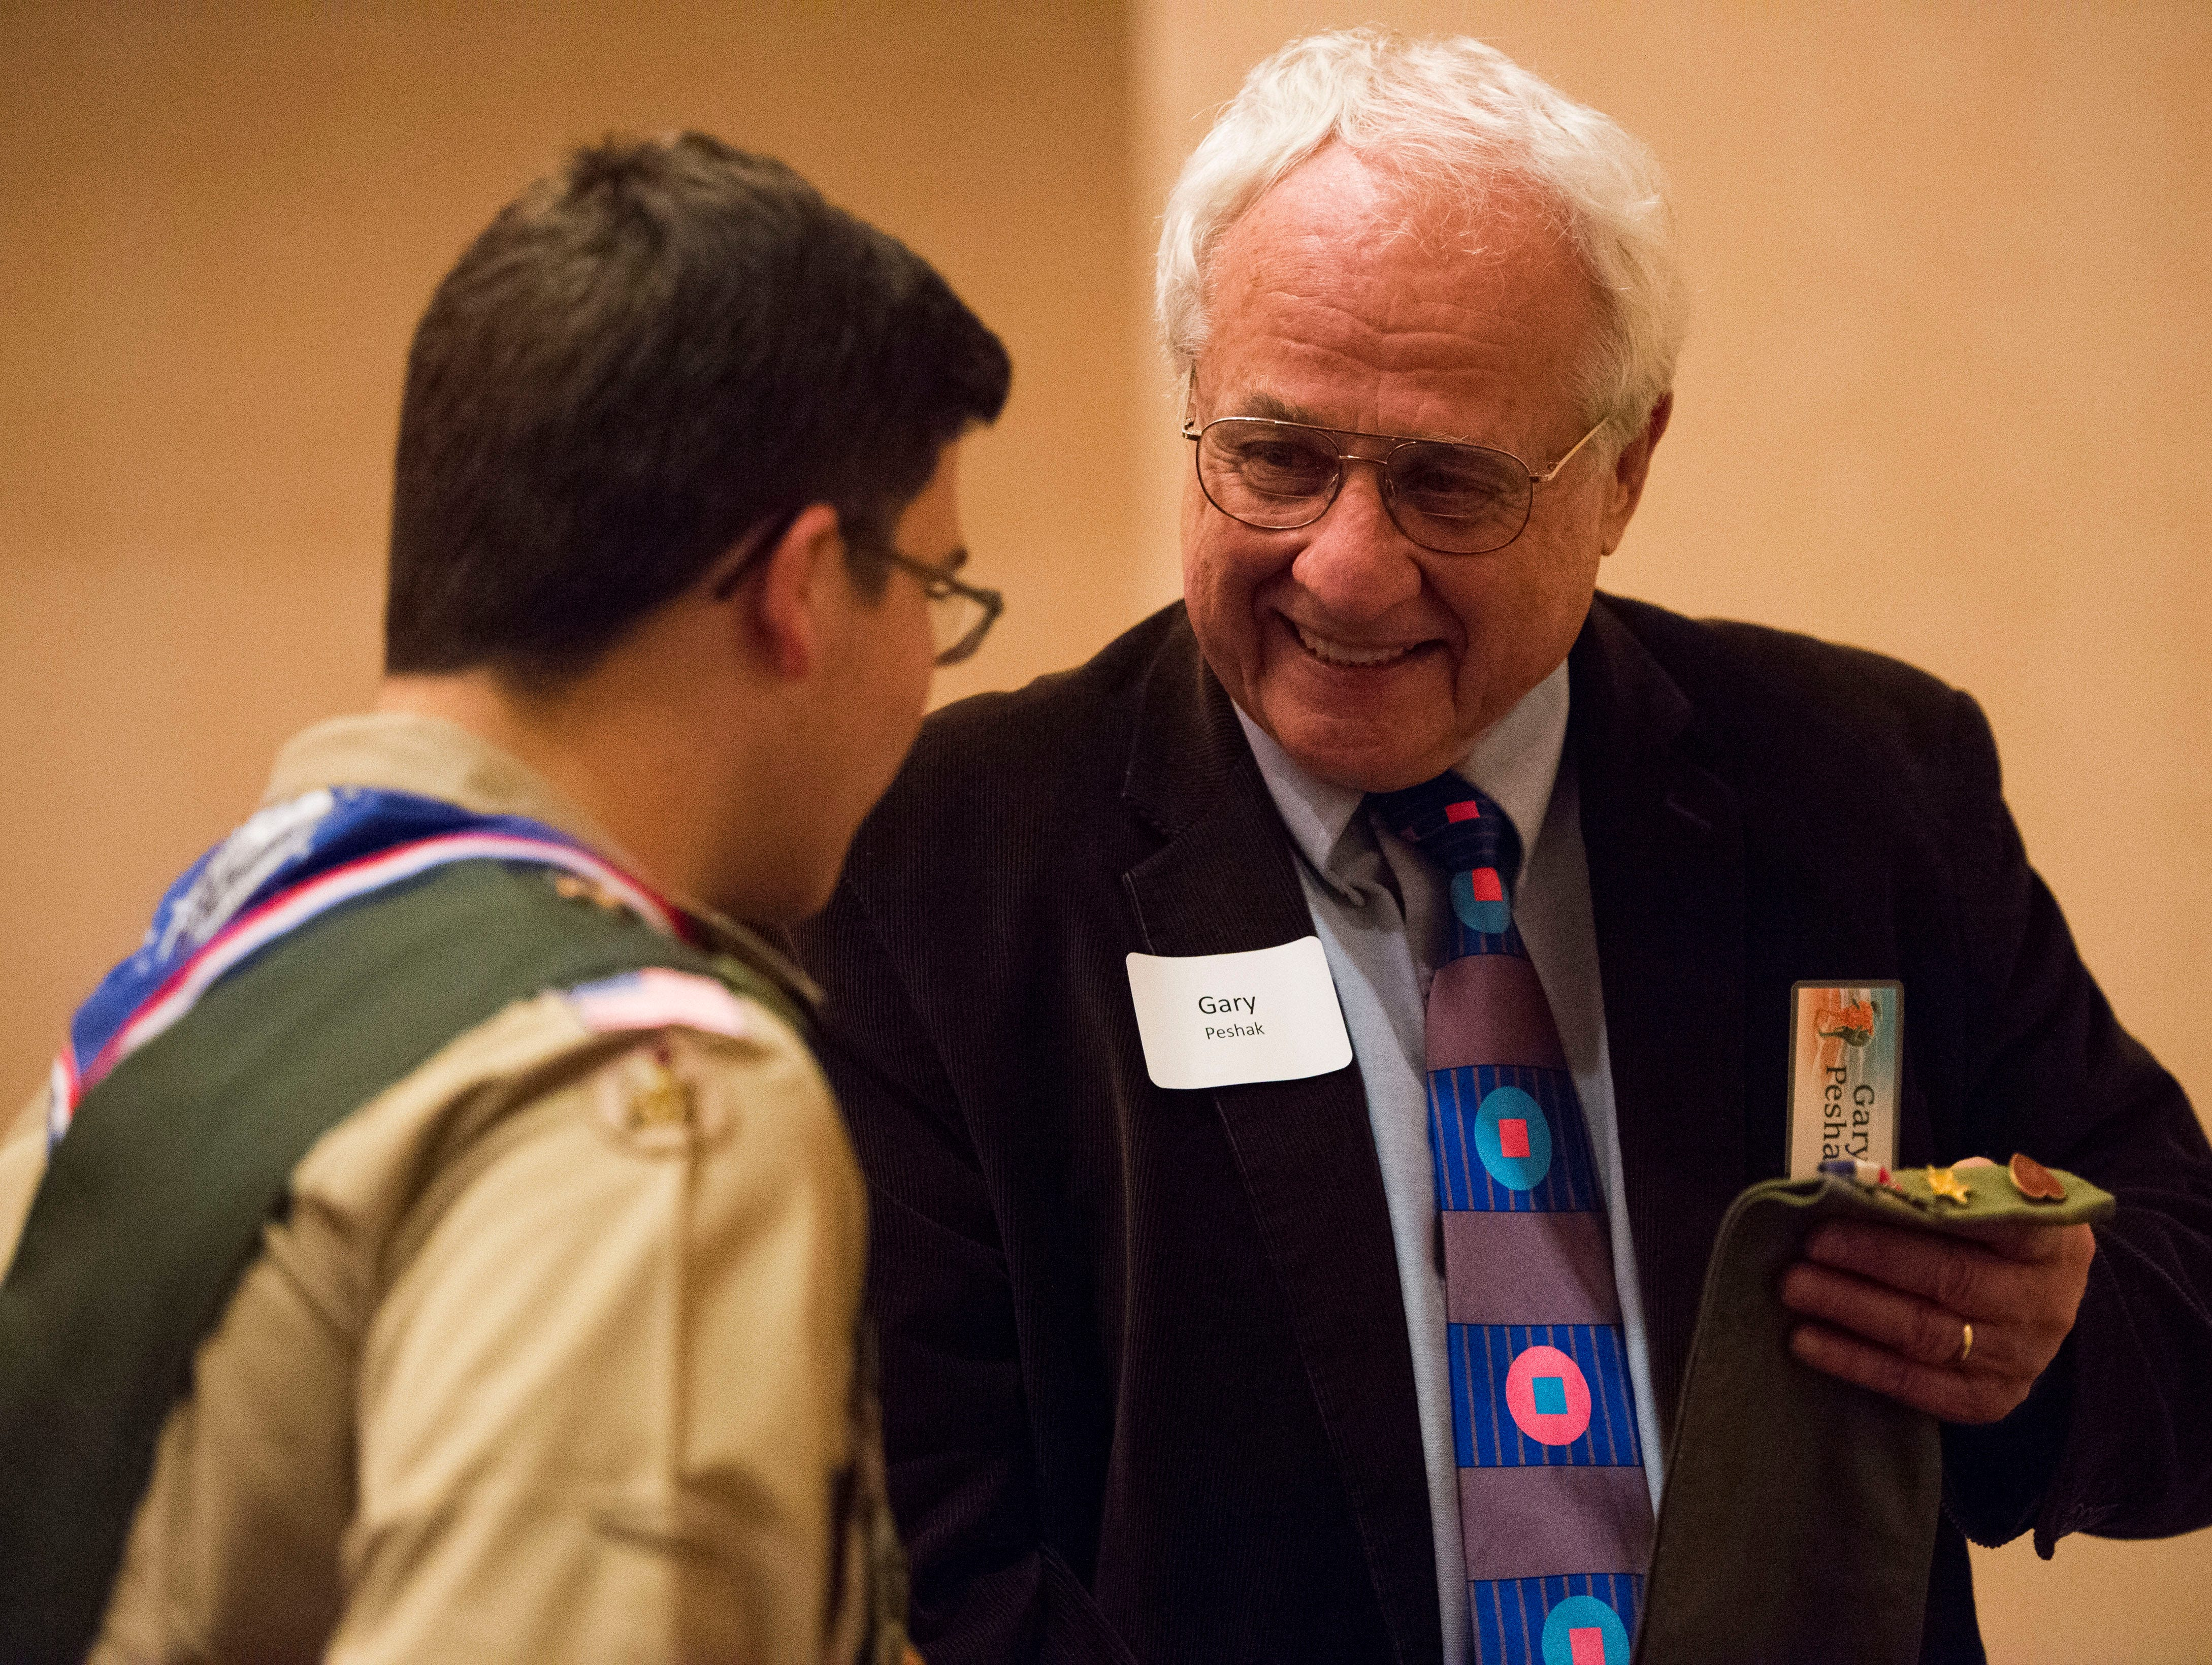 At right Gary Peshak looks at old scouting paraphernalia with a scout at the 2018 Eagle Scout gathering held at Hotel Knoxville Thursday, Nov. 15, 2018. Sam Beall received the Silver Beaver award at the event, which is the highest award in scouting.